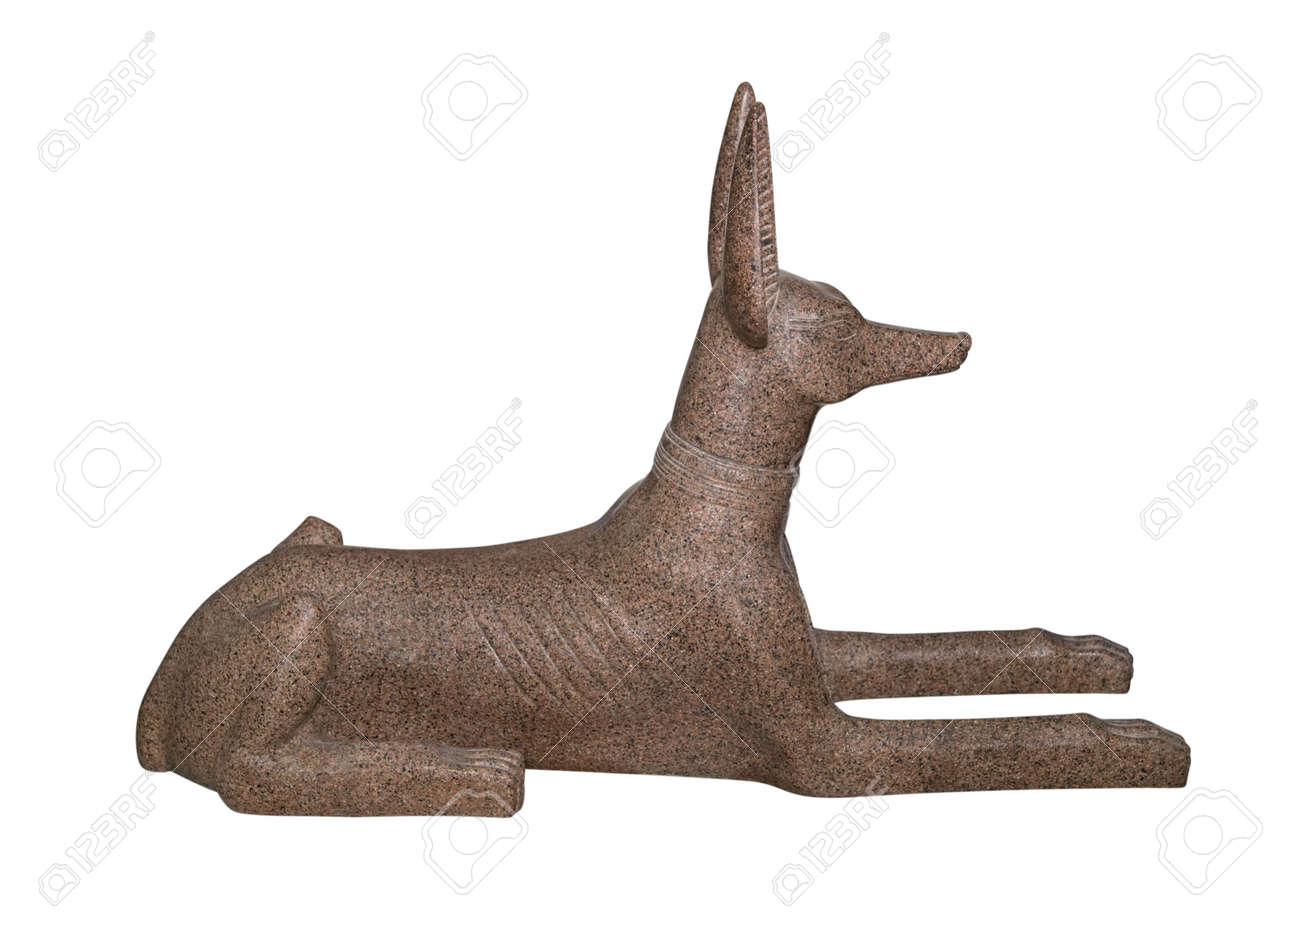 Egyptian souvenir, Anubis, God of Dead, made of pink granite, isolated on white background Stock Photo - 6293985